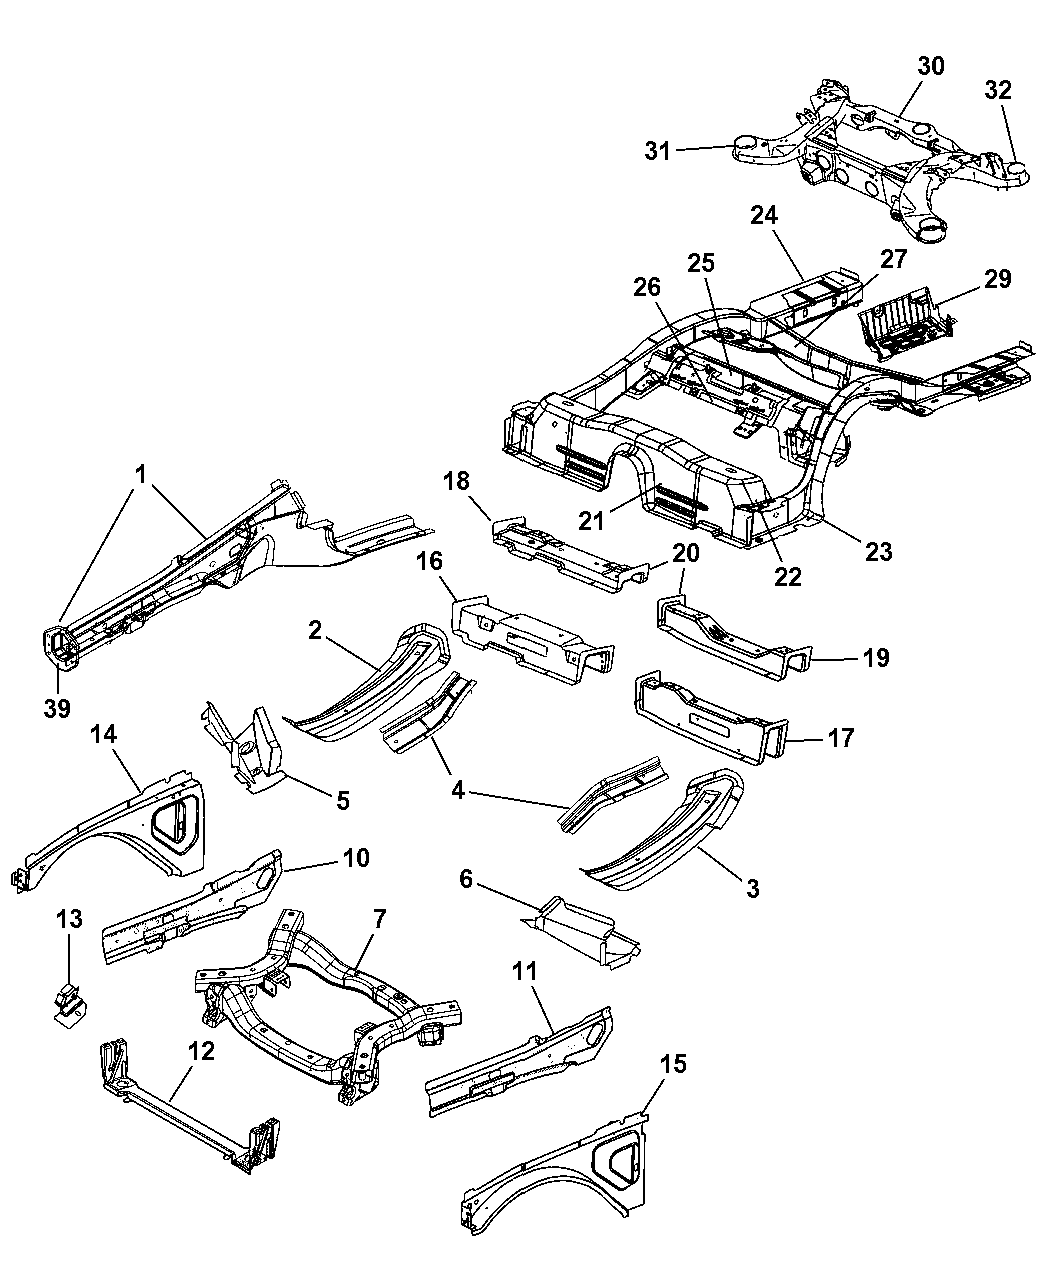 srt8 chrysler 300 parts diagram